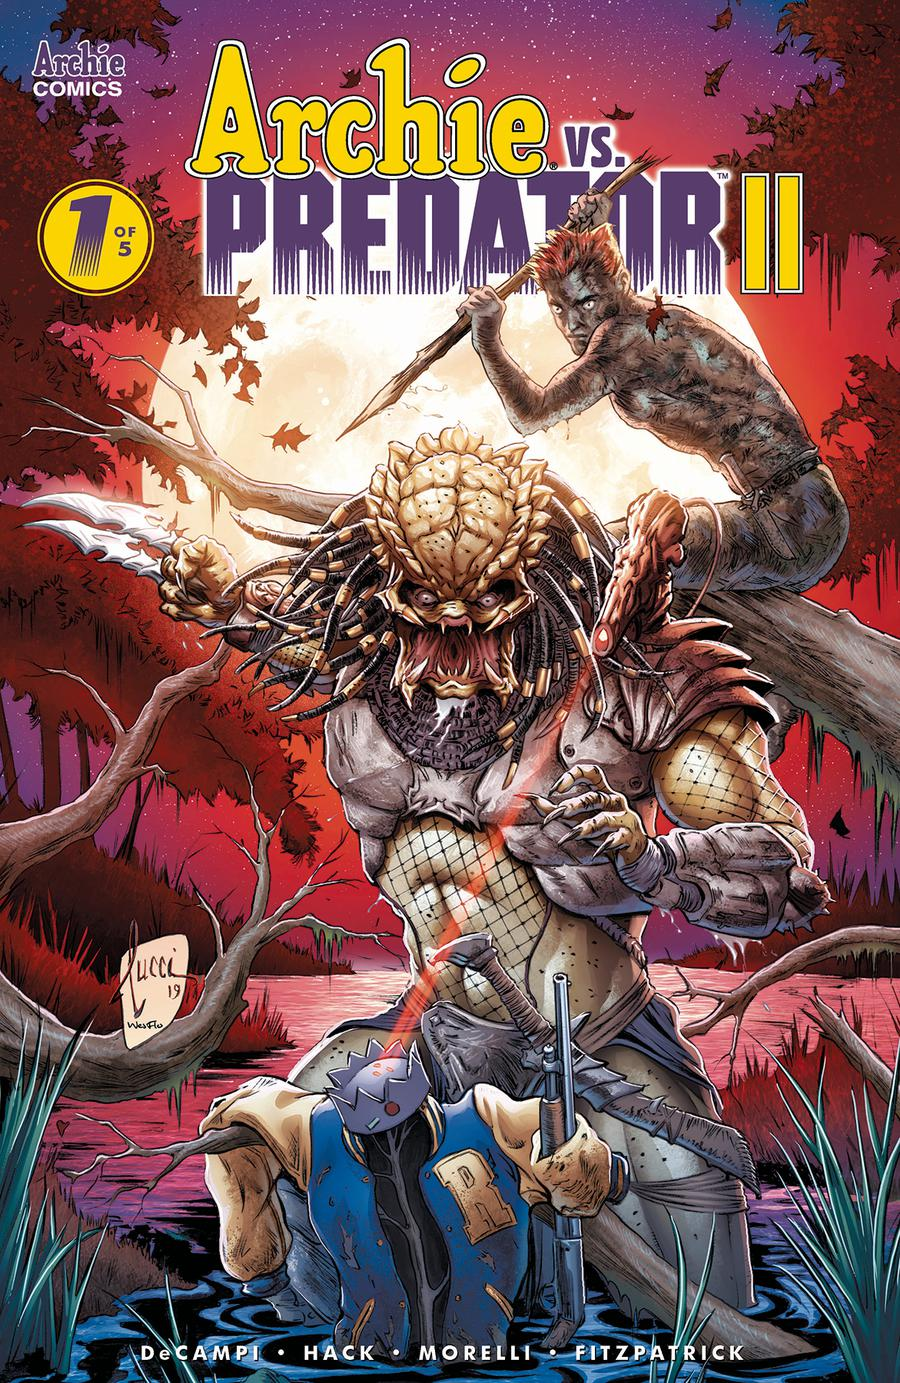 Archie vs Predator II #1 Cover F Variant Billy Tucci & Wes Hartman Cover